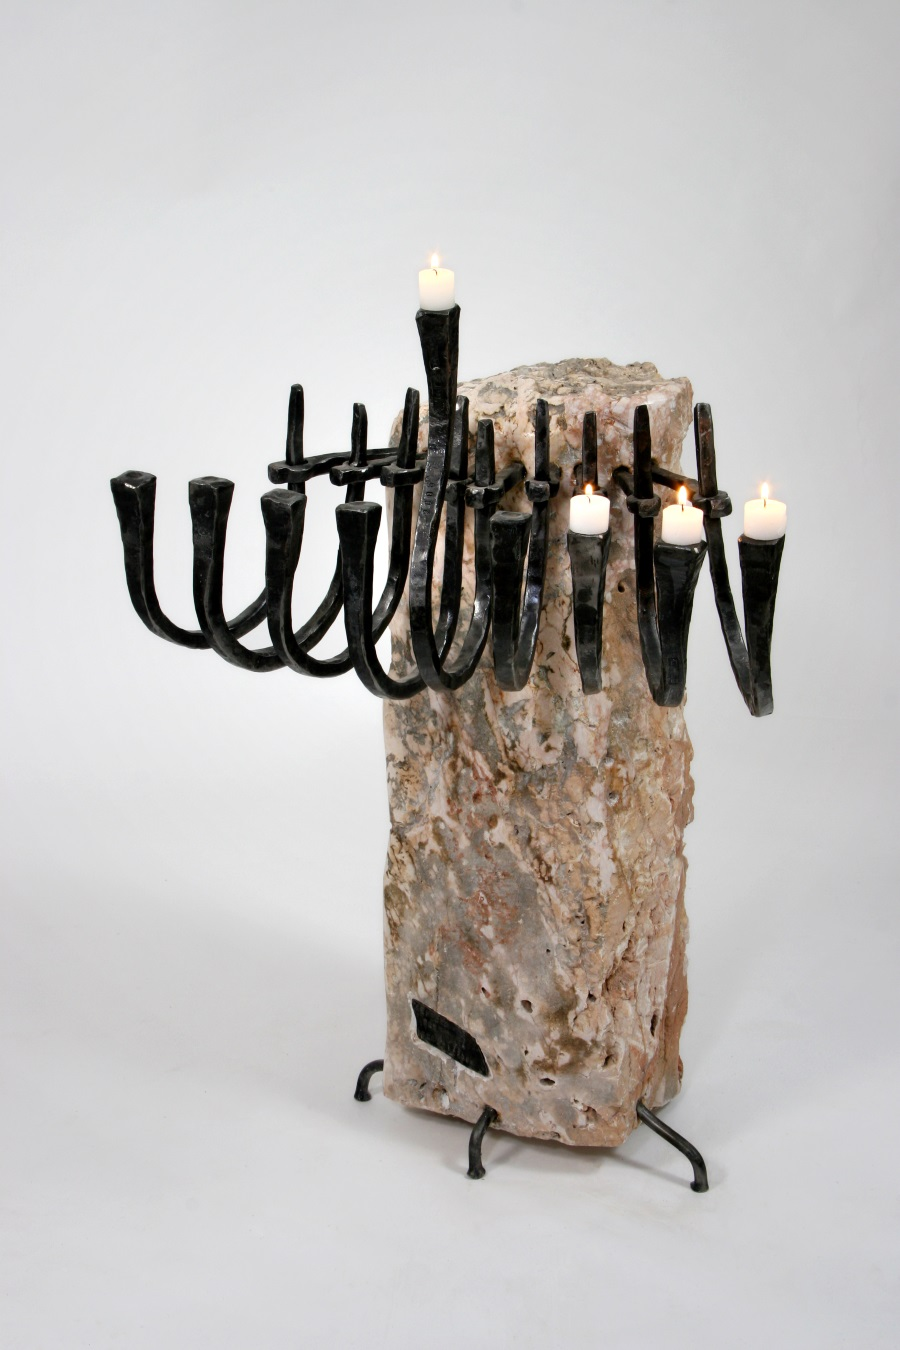 """Ribs"" – ribs-shaped Hanucka menorah from Iron & Jeruslaem Stone"